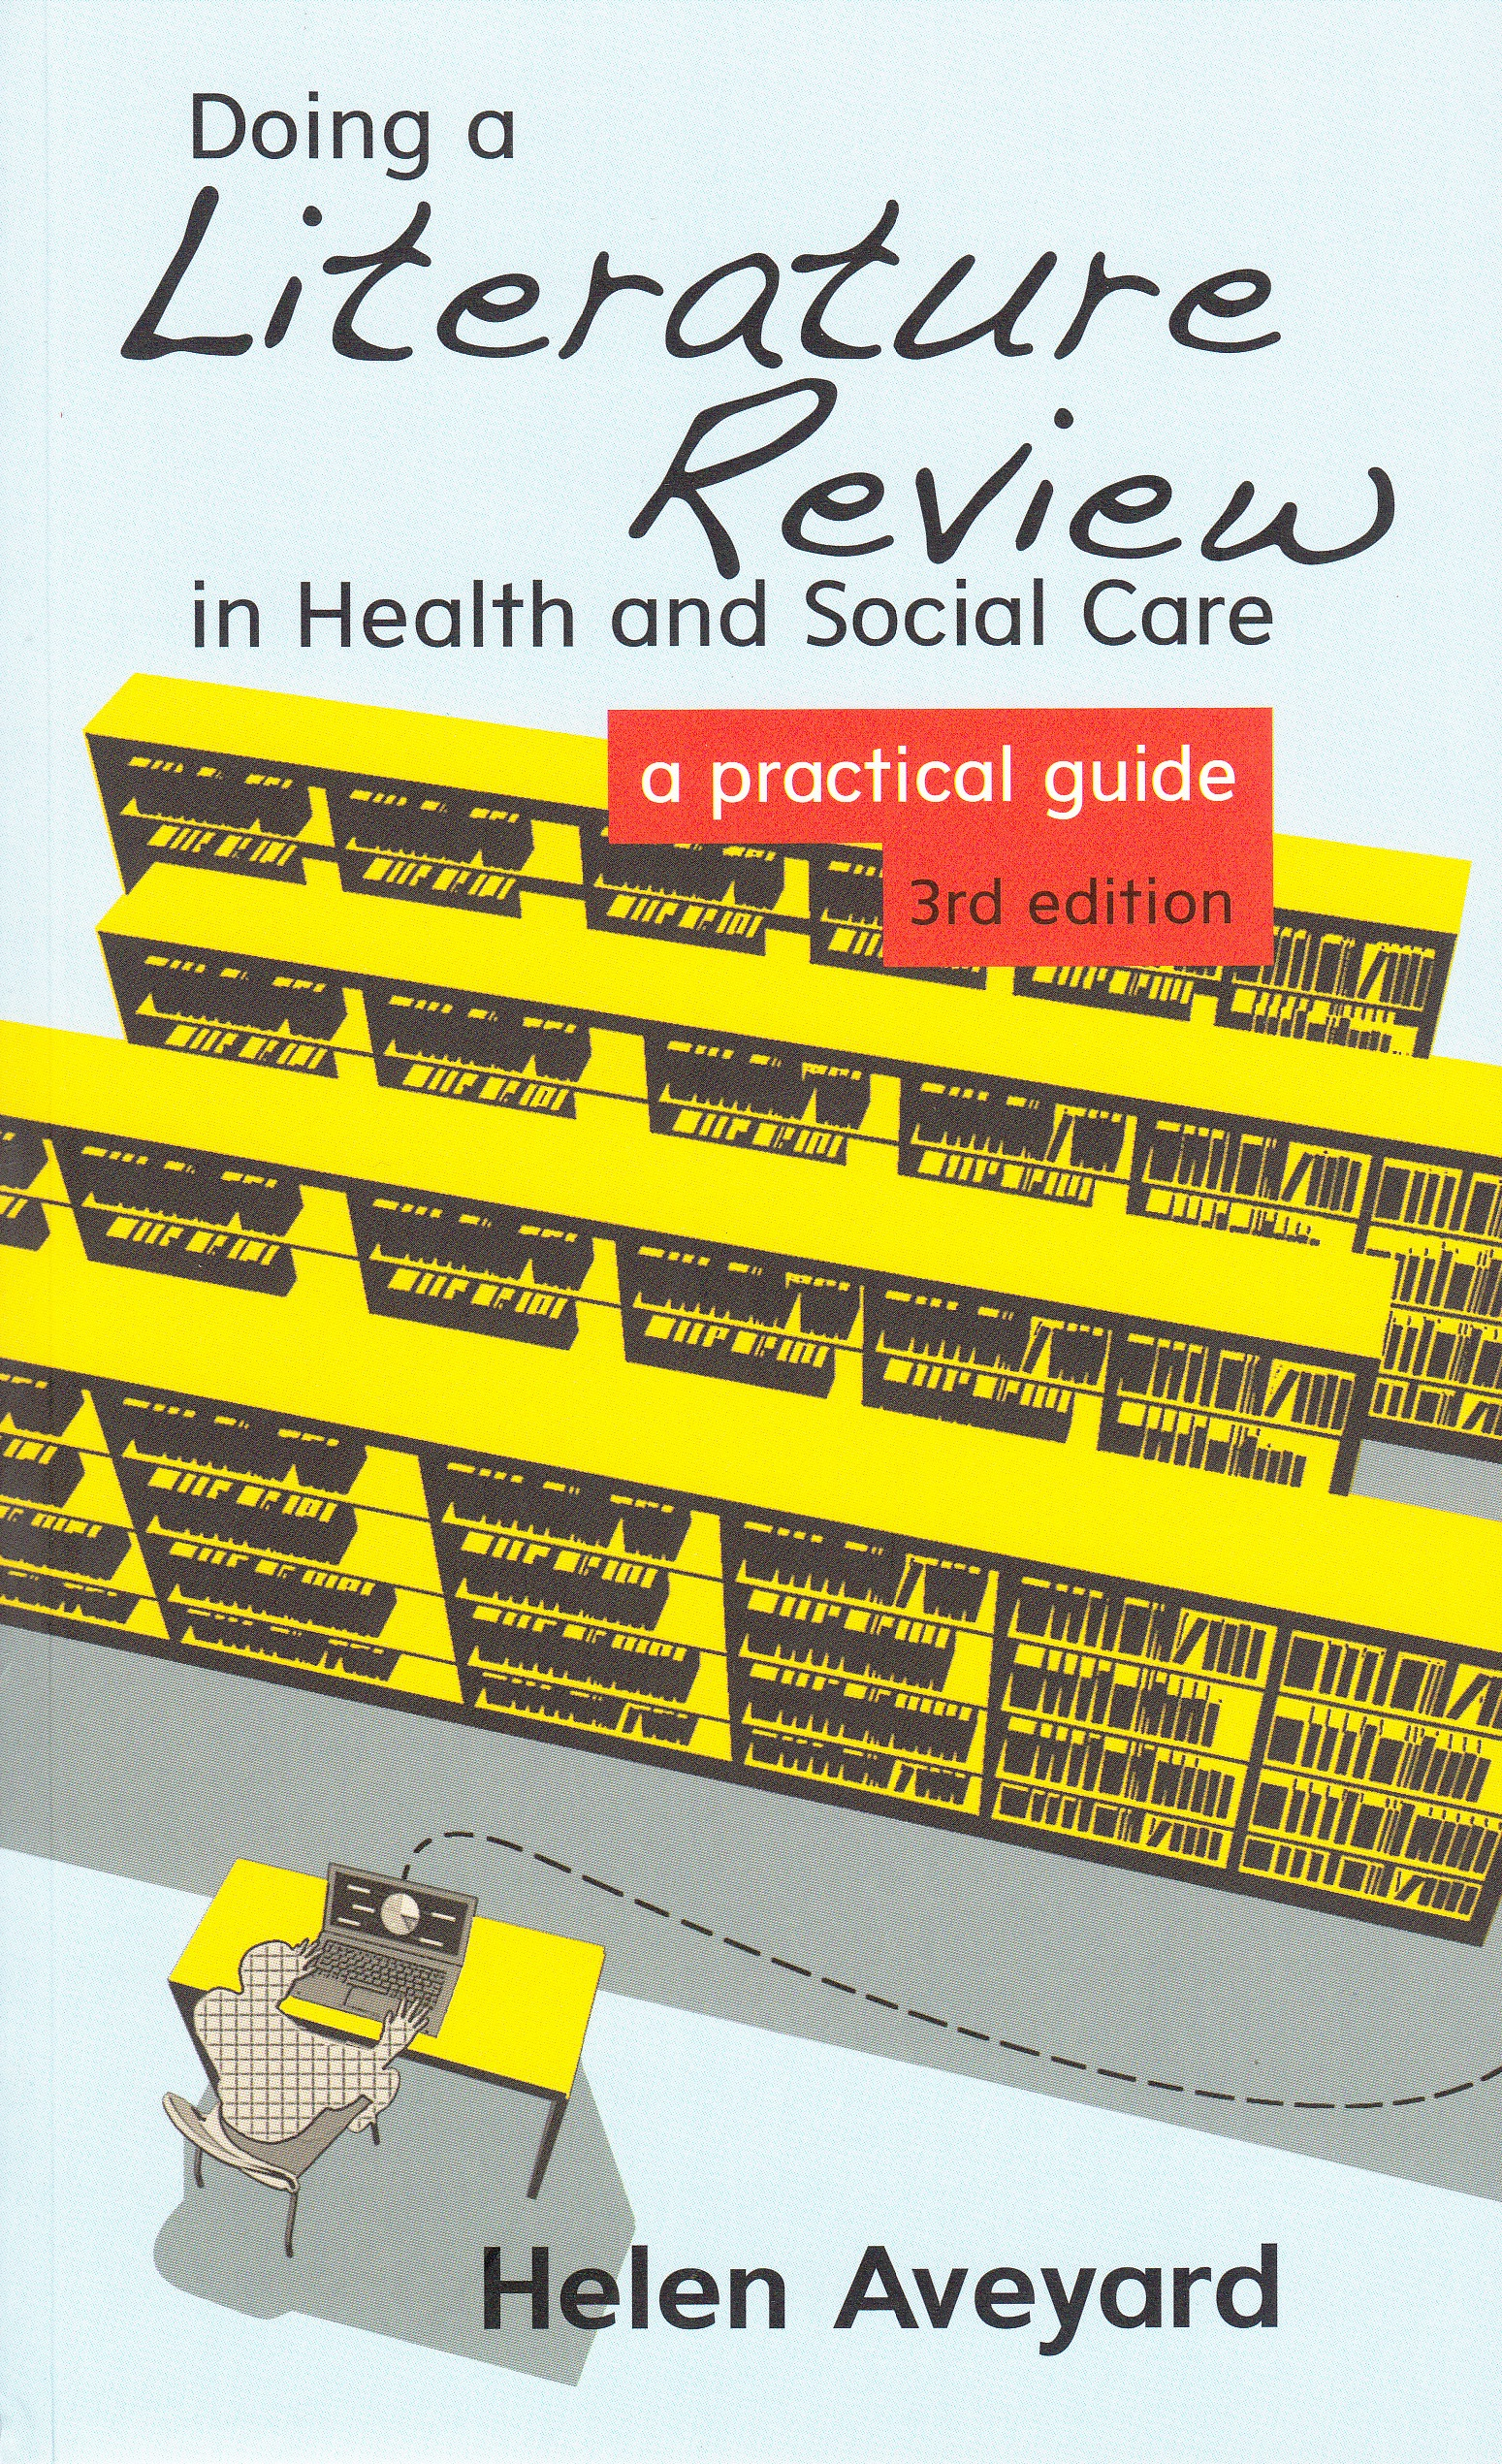 doing a literature review in health and social care a practical guide paperback This bestselling book is a step-by-step guide to doing a literature review in health and social care it is vital reading for all those undertaking their undergraduate or postgraduate dissertation or any research module which involves a literature review.